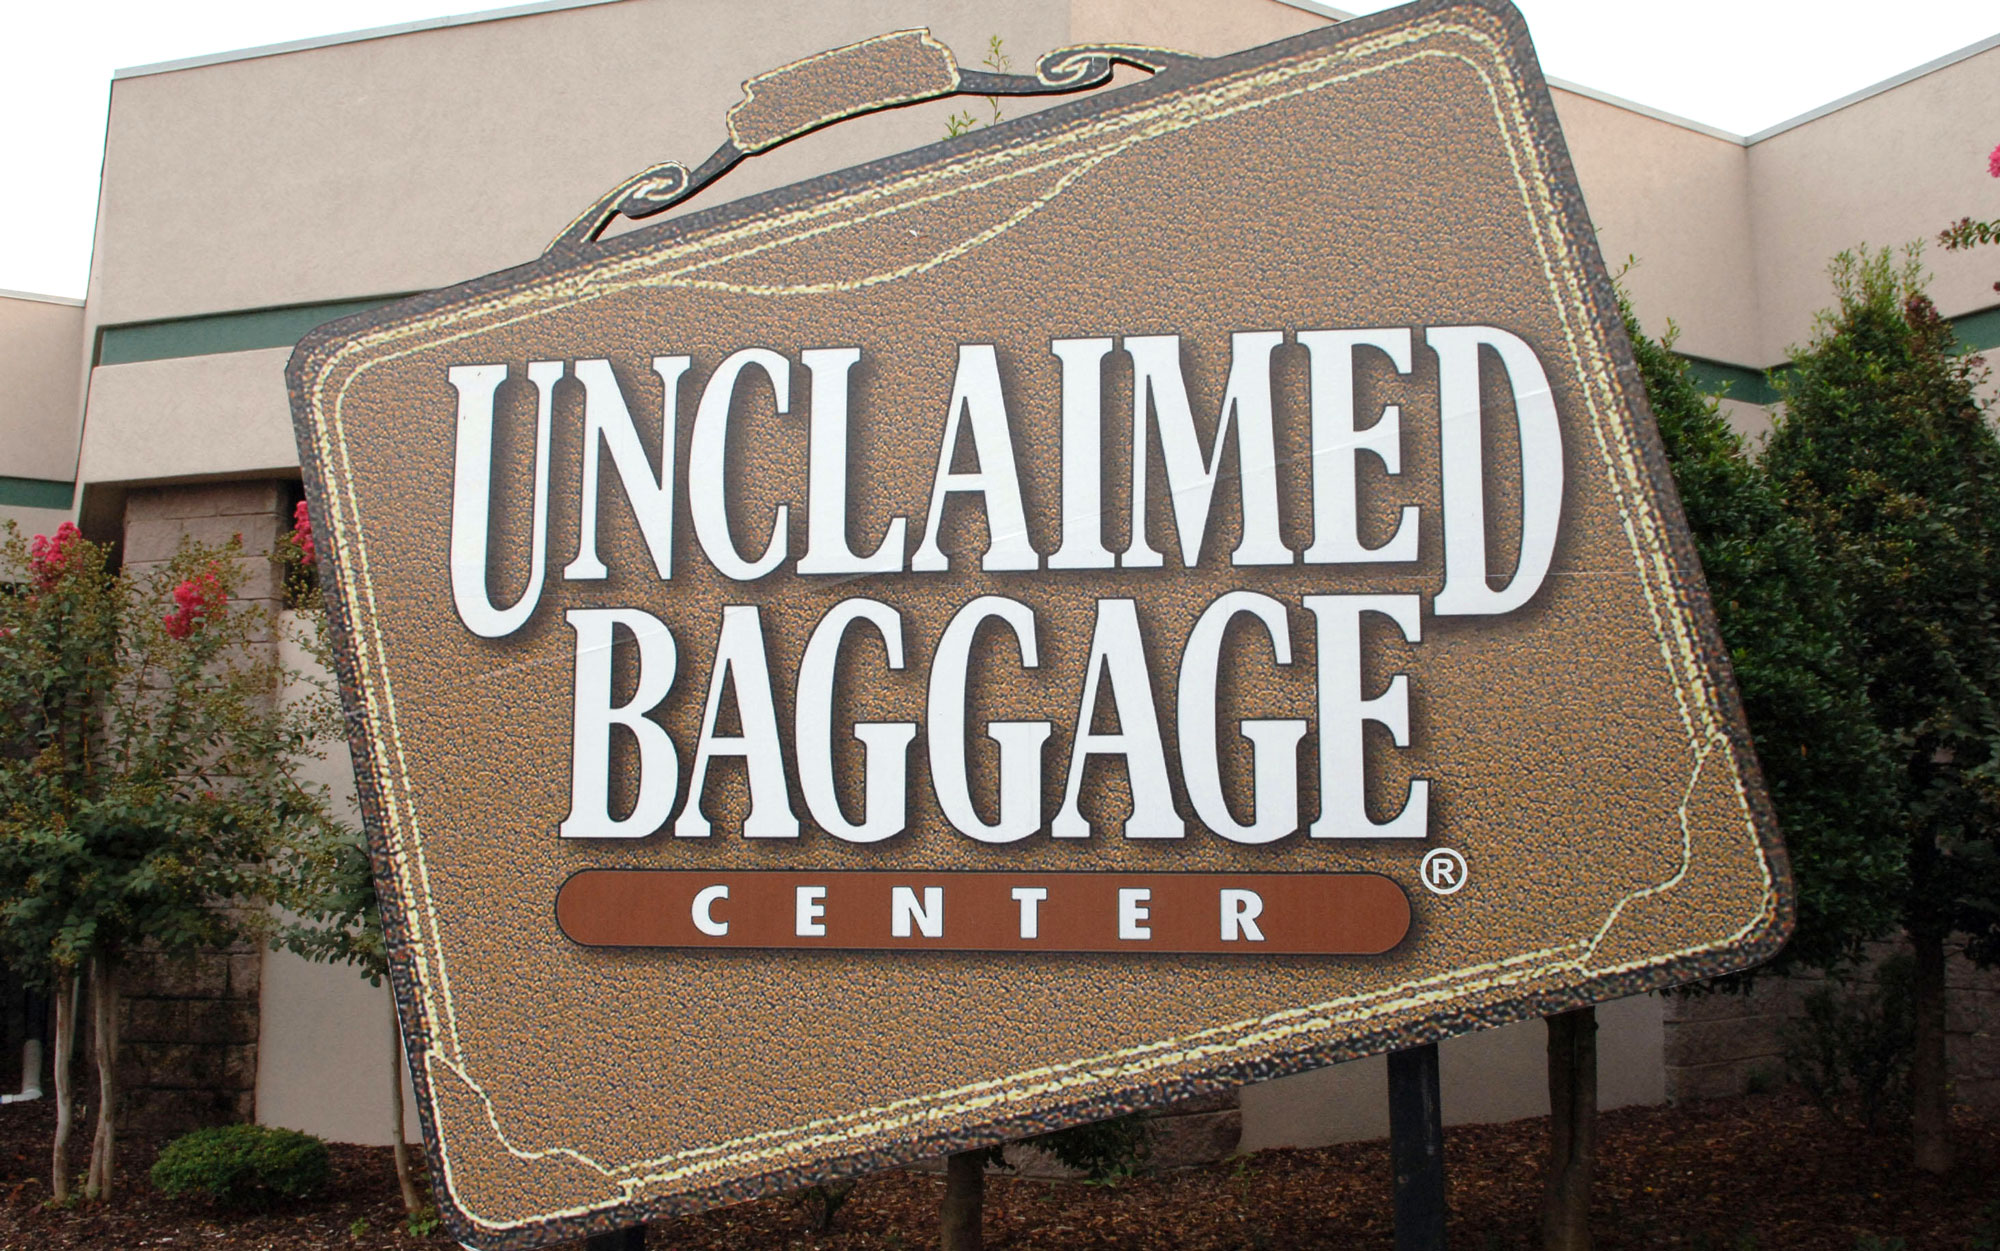 Weirdest Roadside Attractions: Alabama: Unclaimed Baggage Center